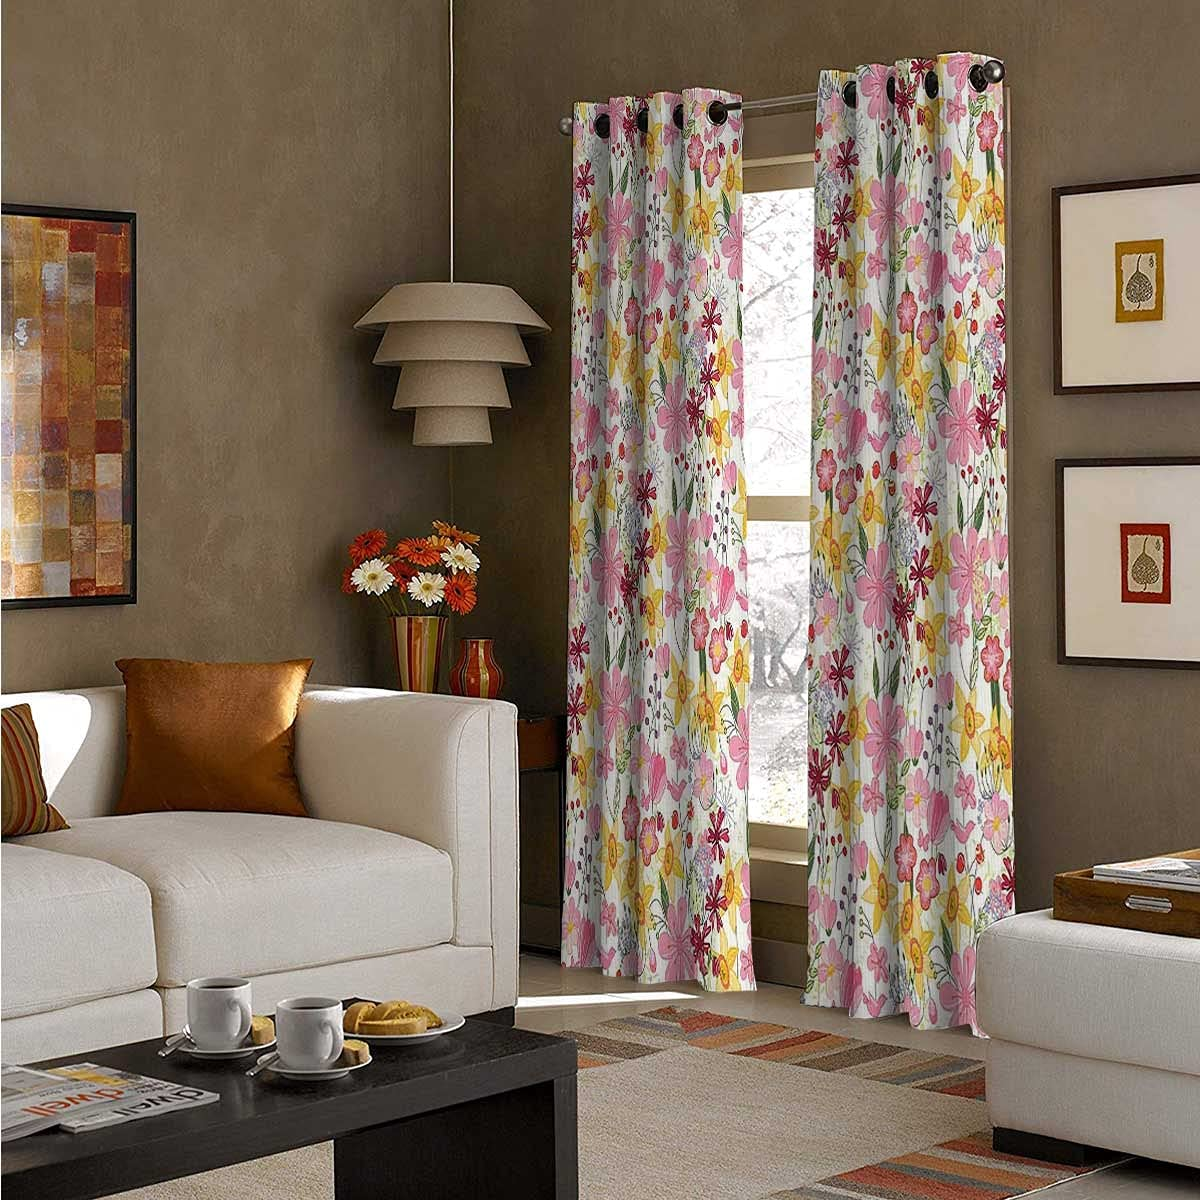 Grommet Curtain Panel 96 Inch Daffodils Tulips G free shipping Industry No. 1 Cartoon Length